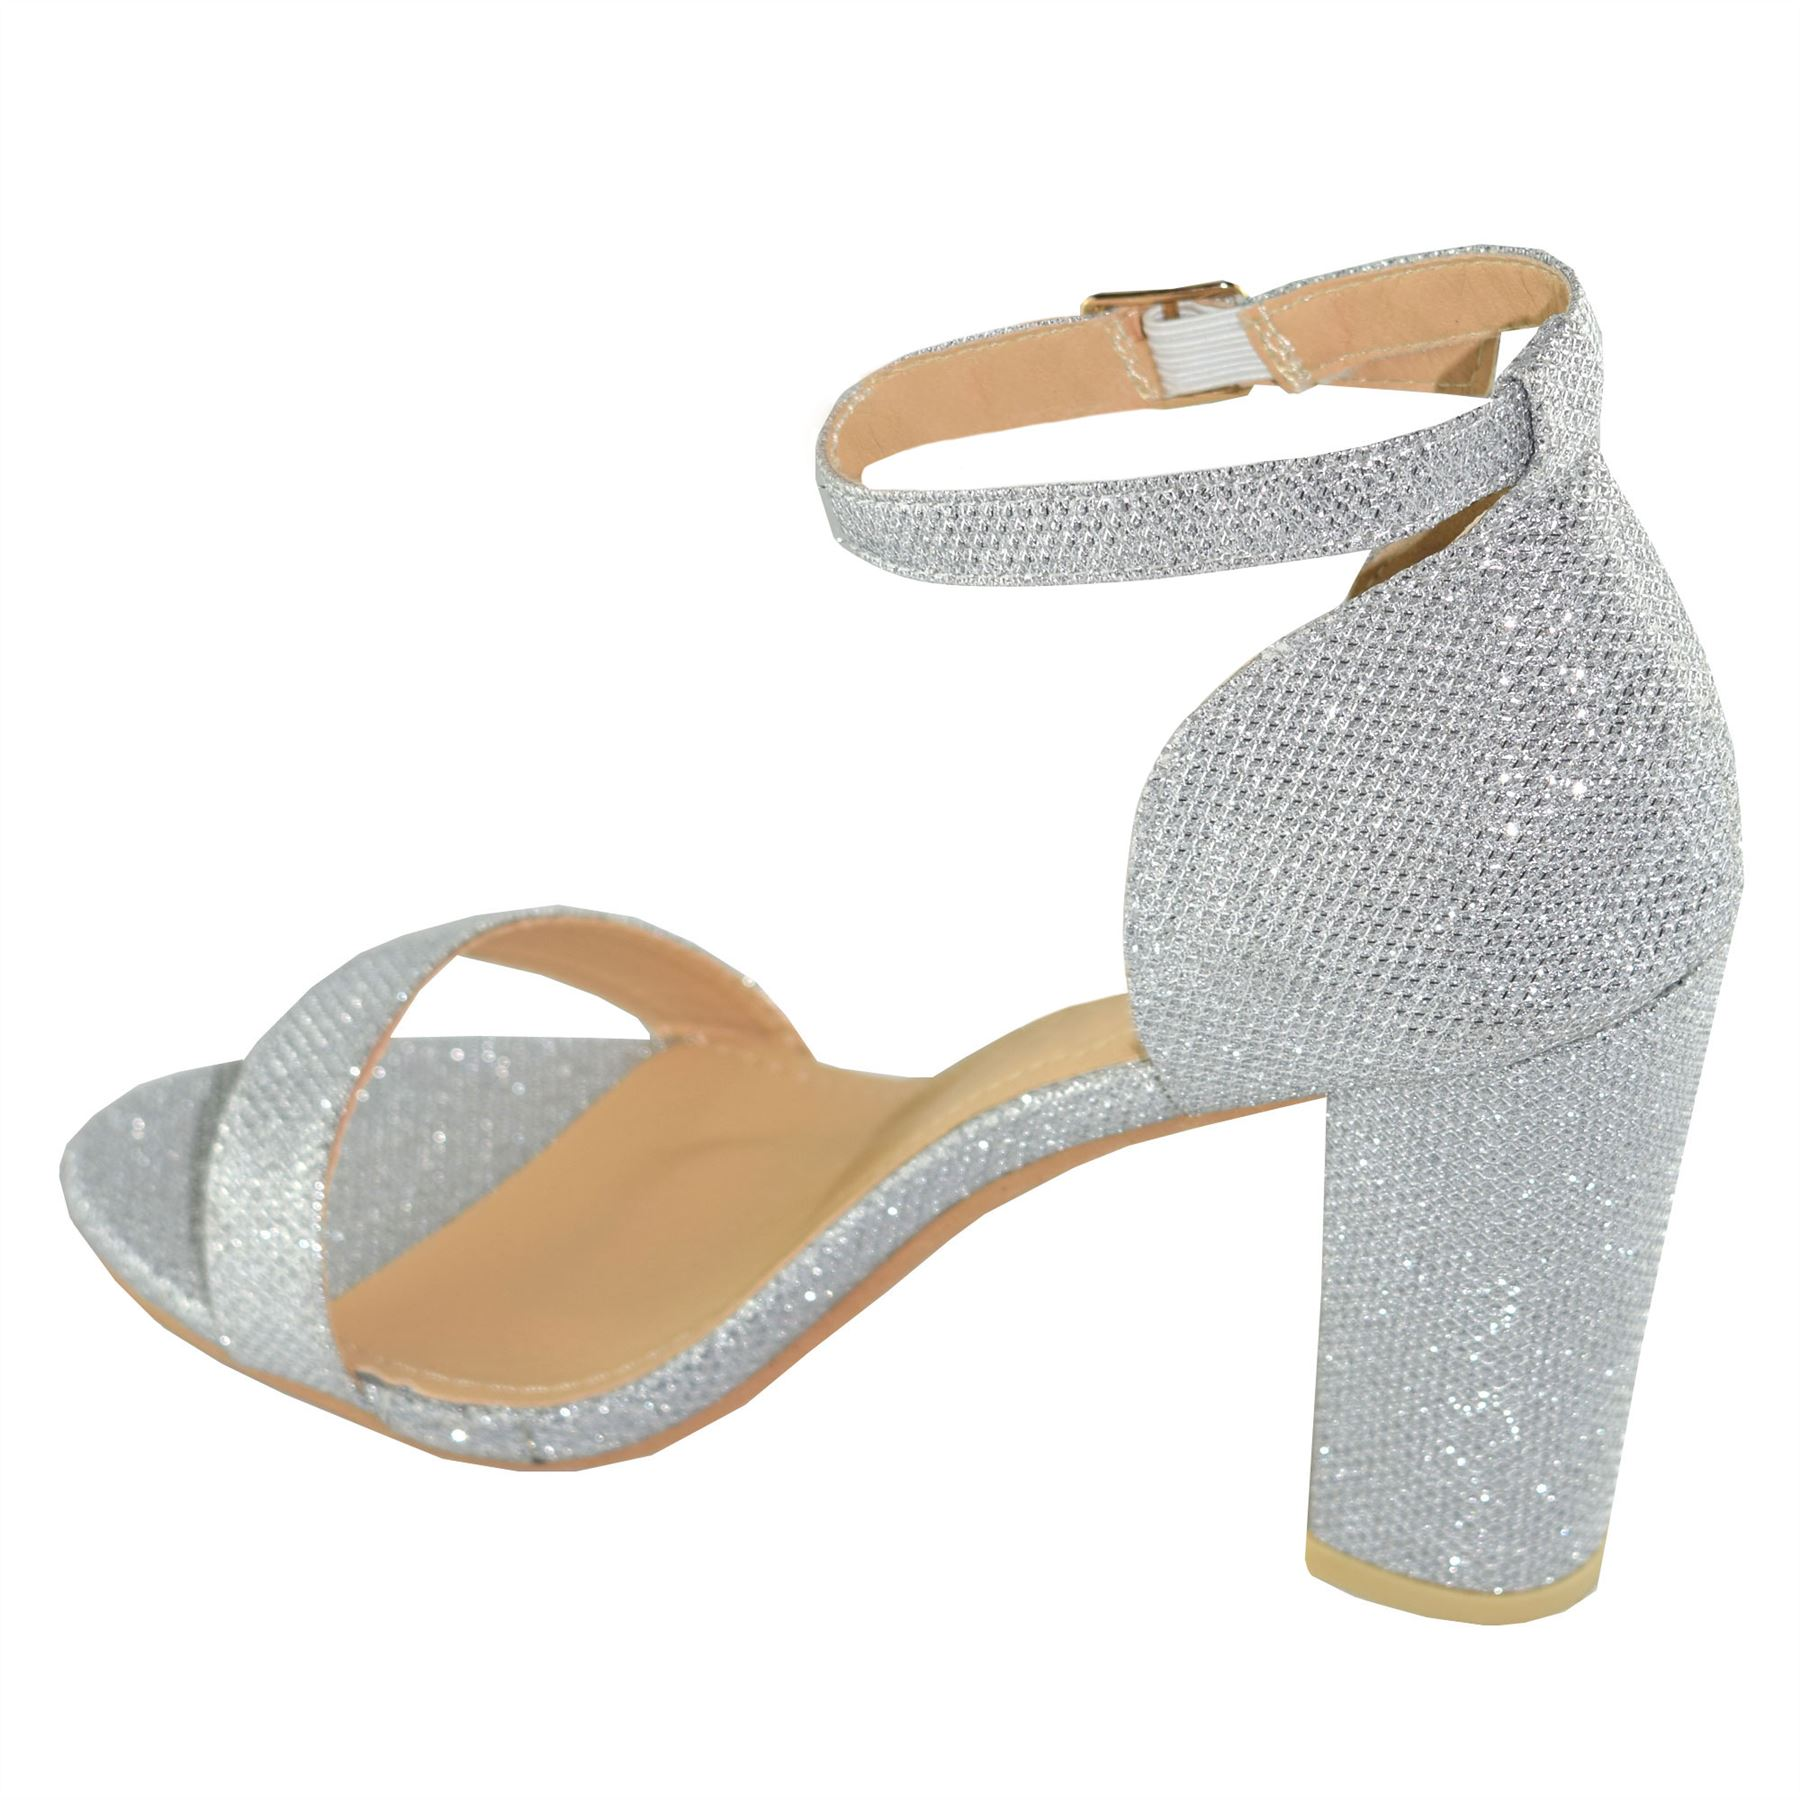 0d2ce33d101 Details about New Womens Mid Block Heel Ankle Strap Sparkle Giltter Formal  Casual Shoes